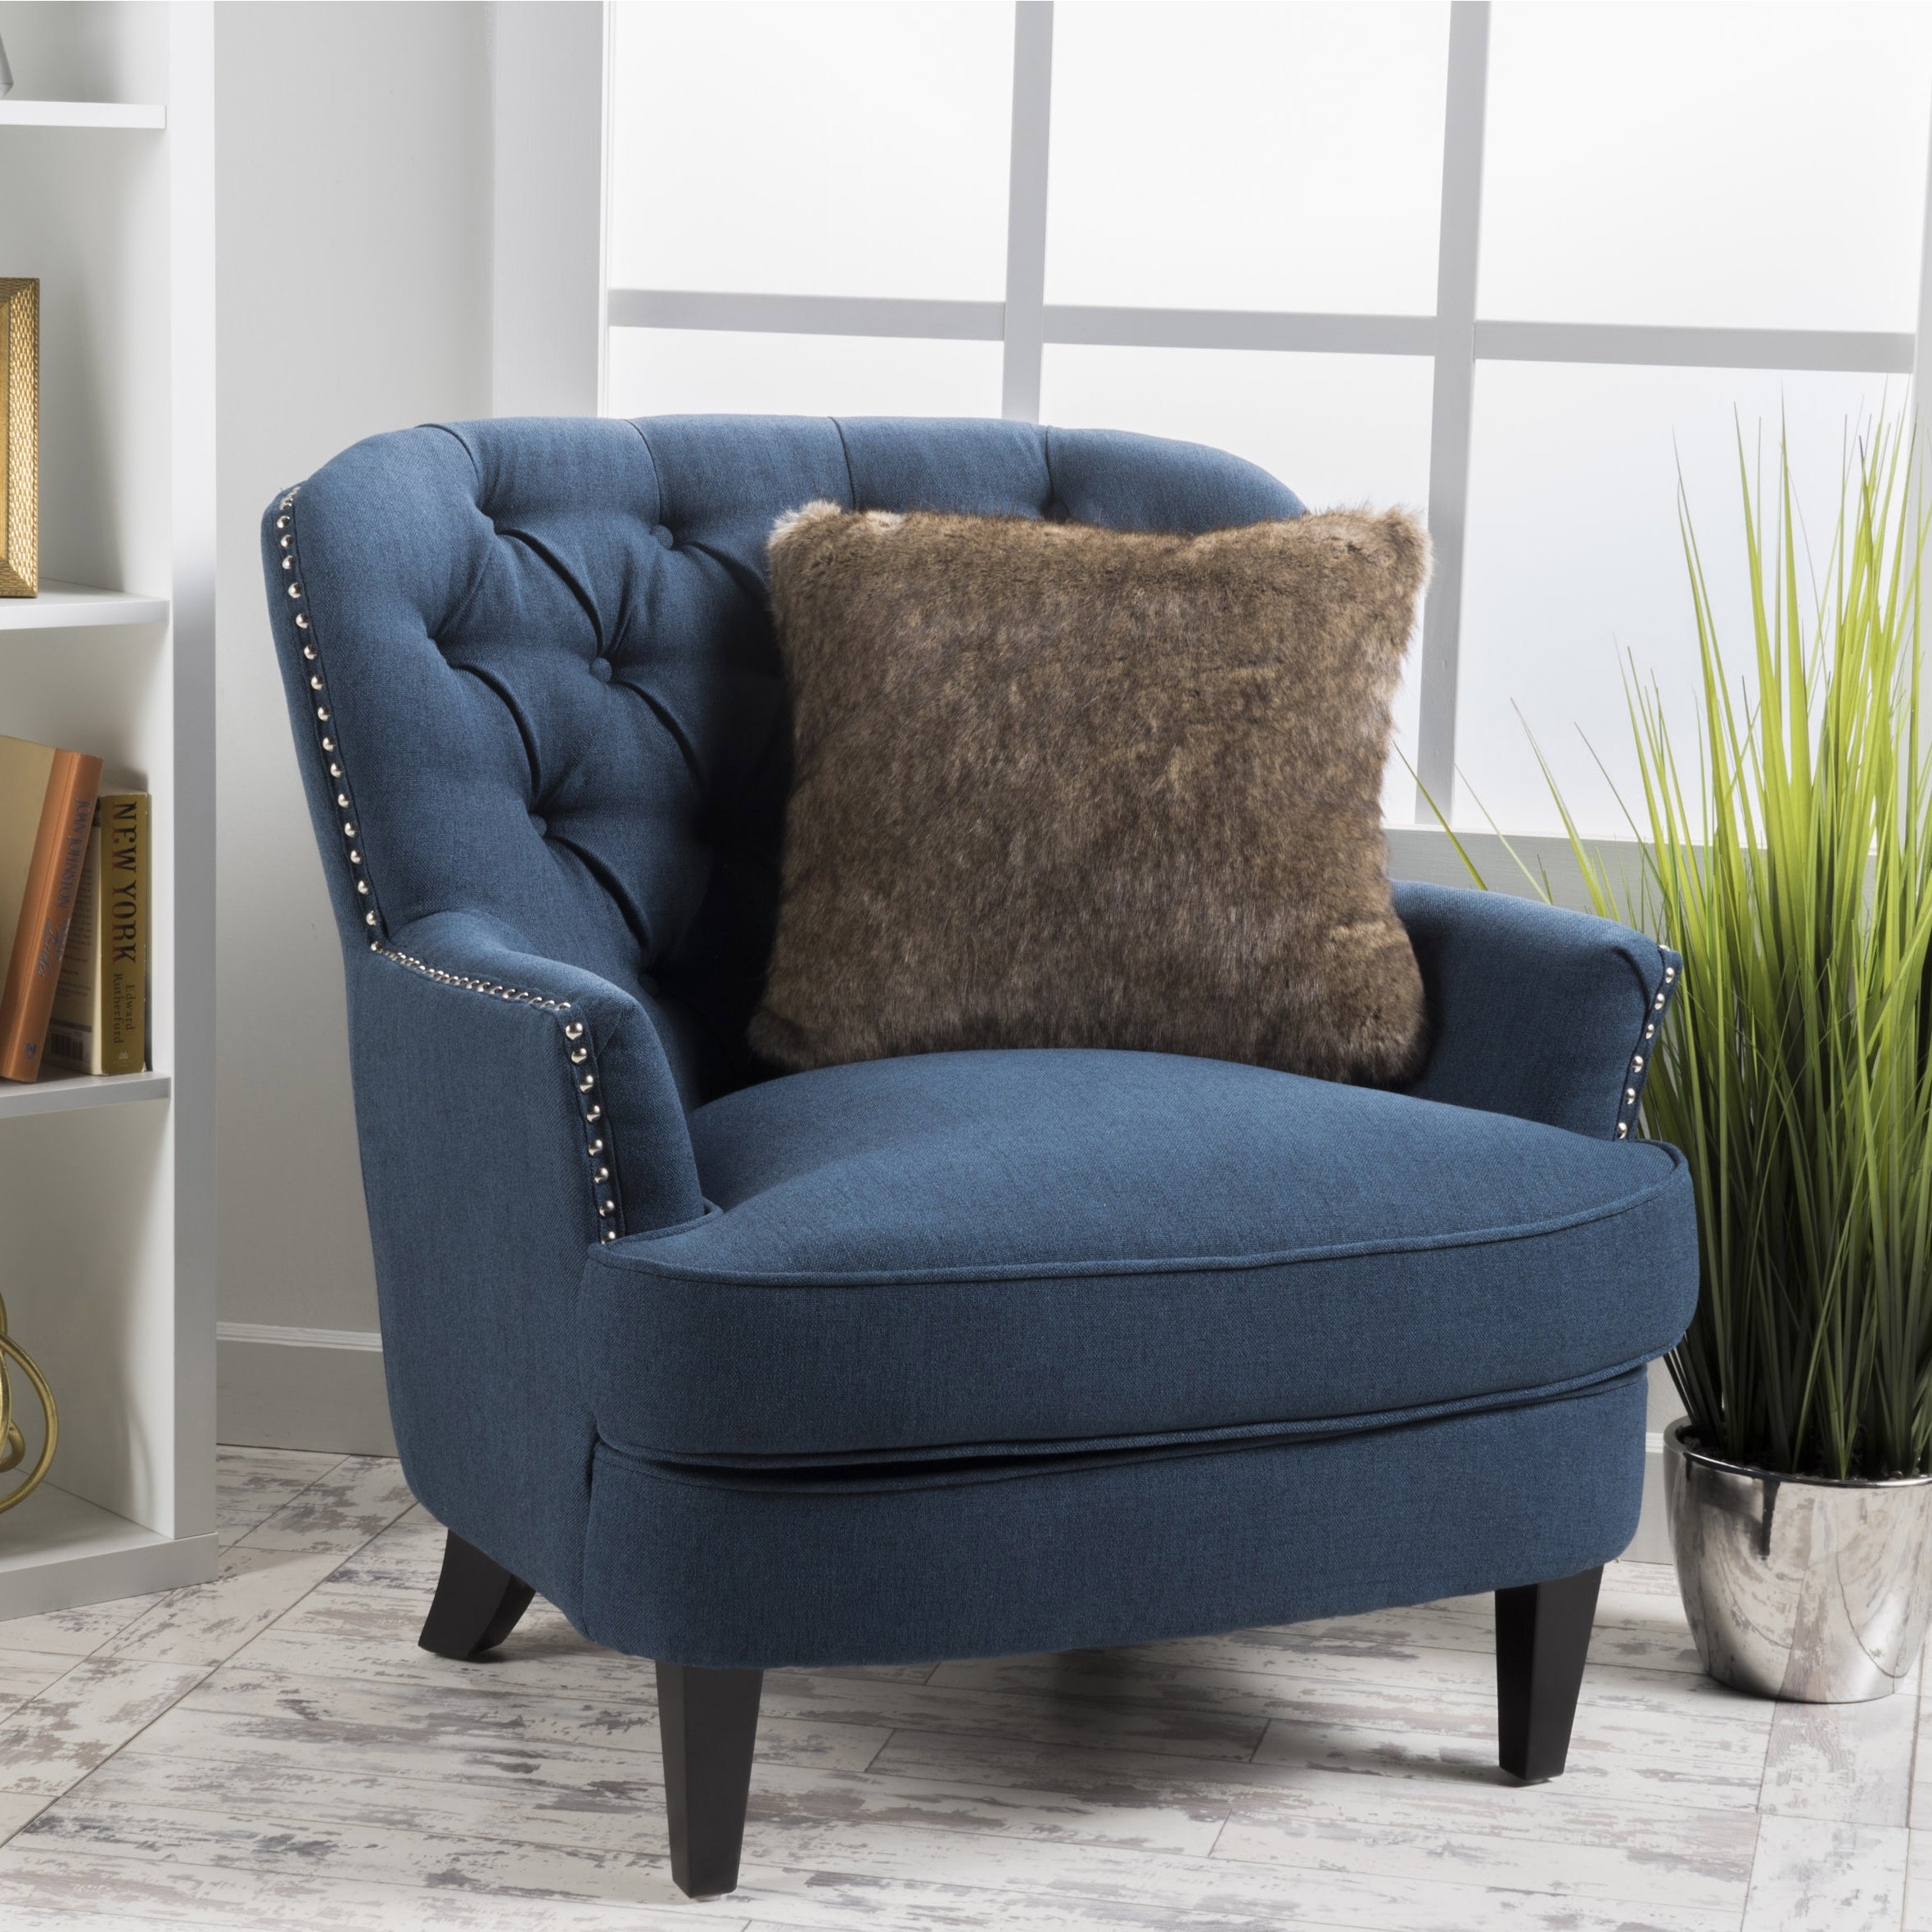 Charmant Shop Tafton Tufted Oversized Fabric Club Chair By Christopher Knight Home    On Sale   Free Shipping Today   Overstock.com   6201477